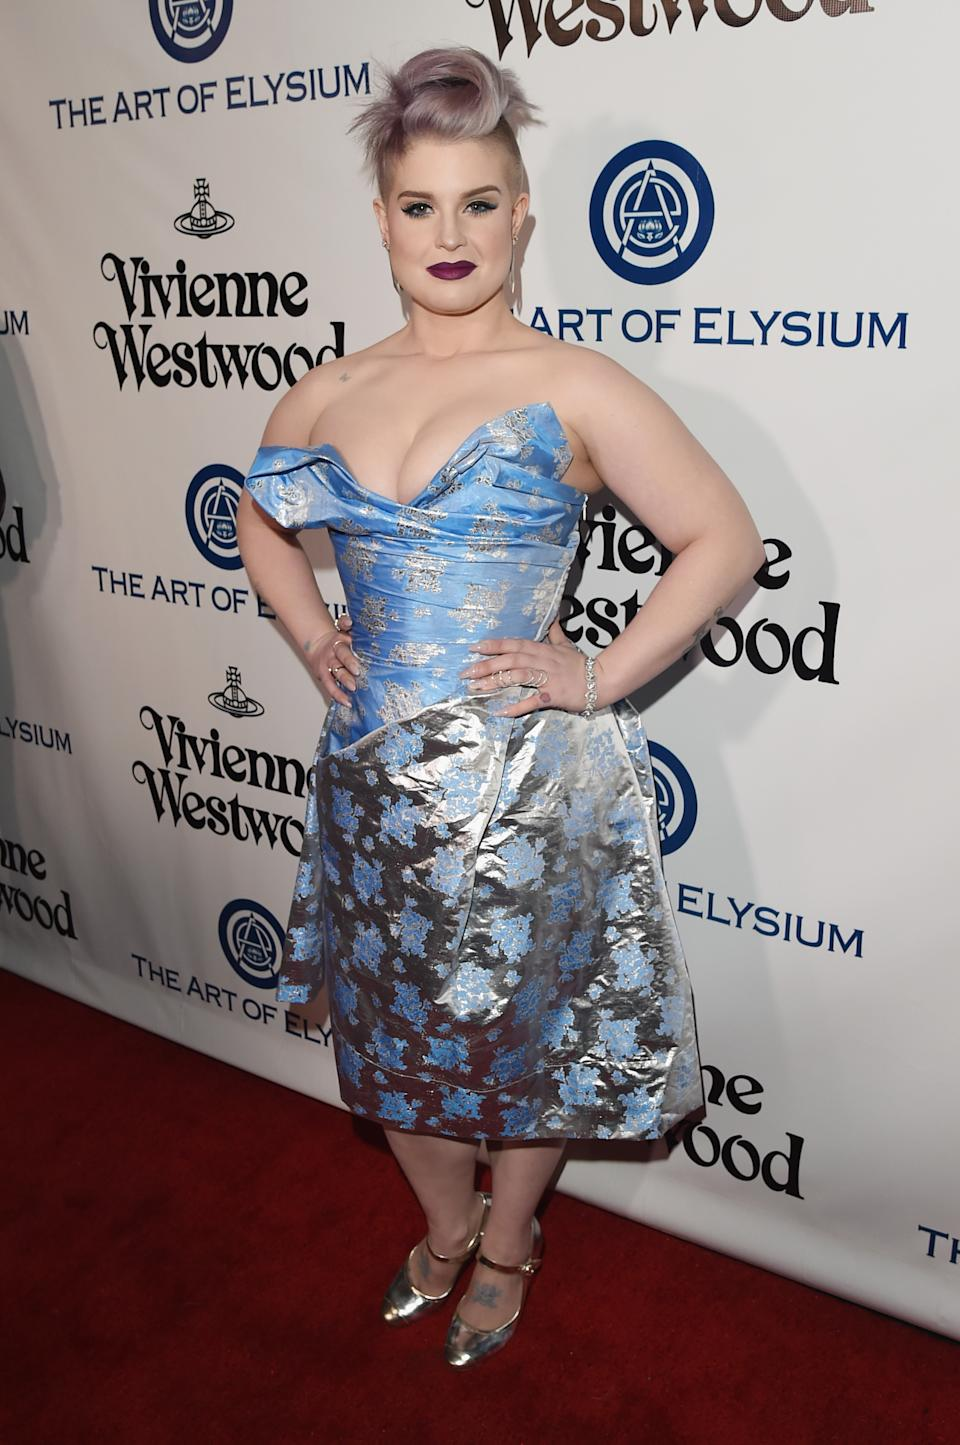 Kelly Osbourne attends The Art of Elysium 2016 HEAVEN Gala presented by Vivienne Westwood & Andreas Kronthaler at 3LABS on January 9, 2016 in Culver City, California.